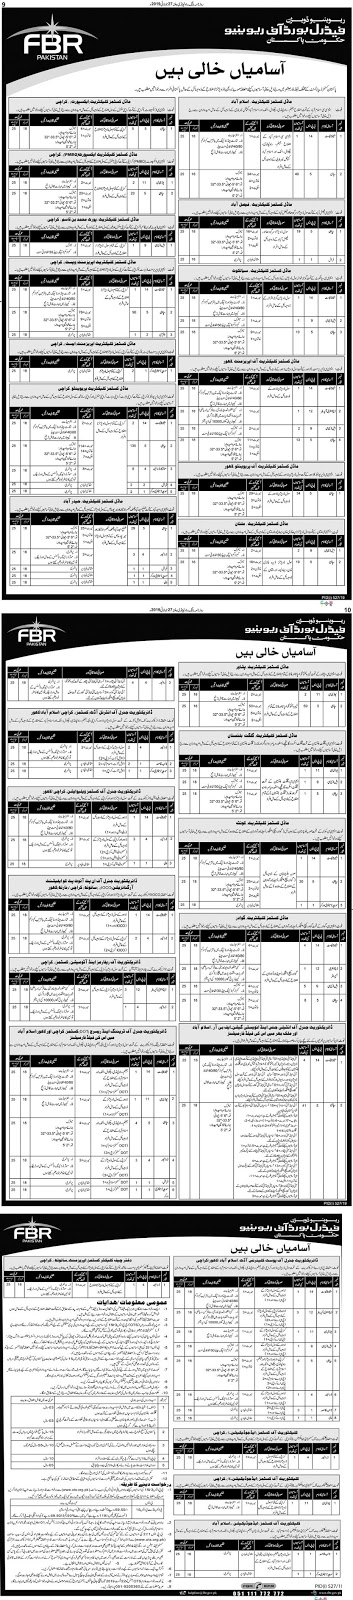 FBR Jobs 2019 Advertisement Latest Federal Board of Revenue Islamabad